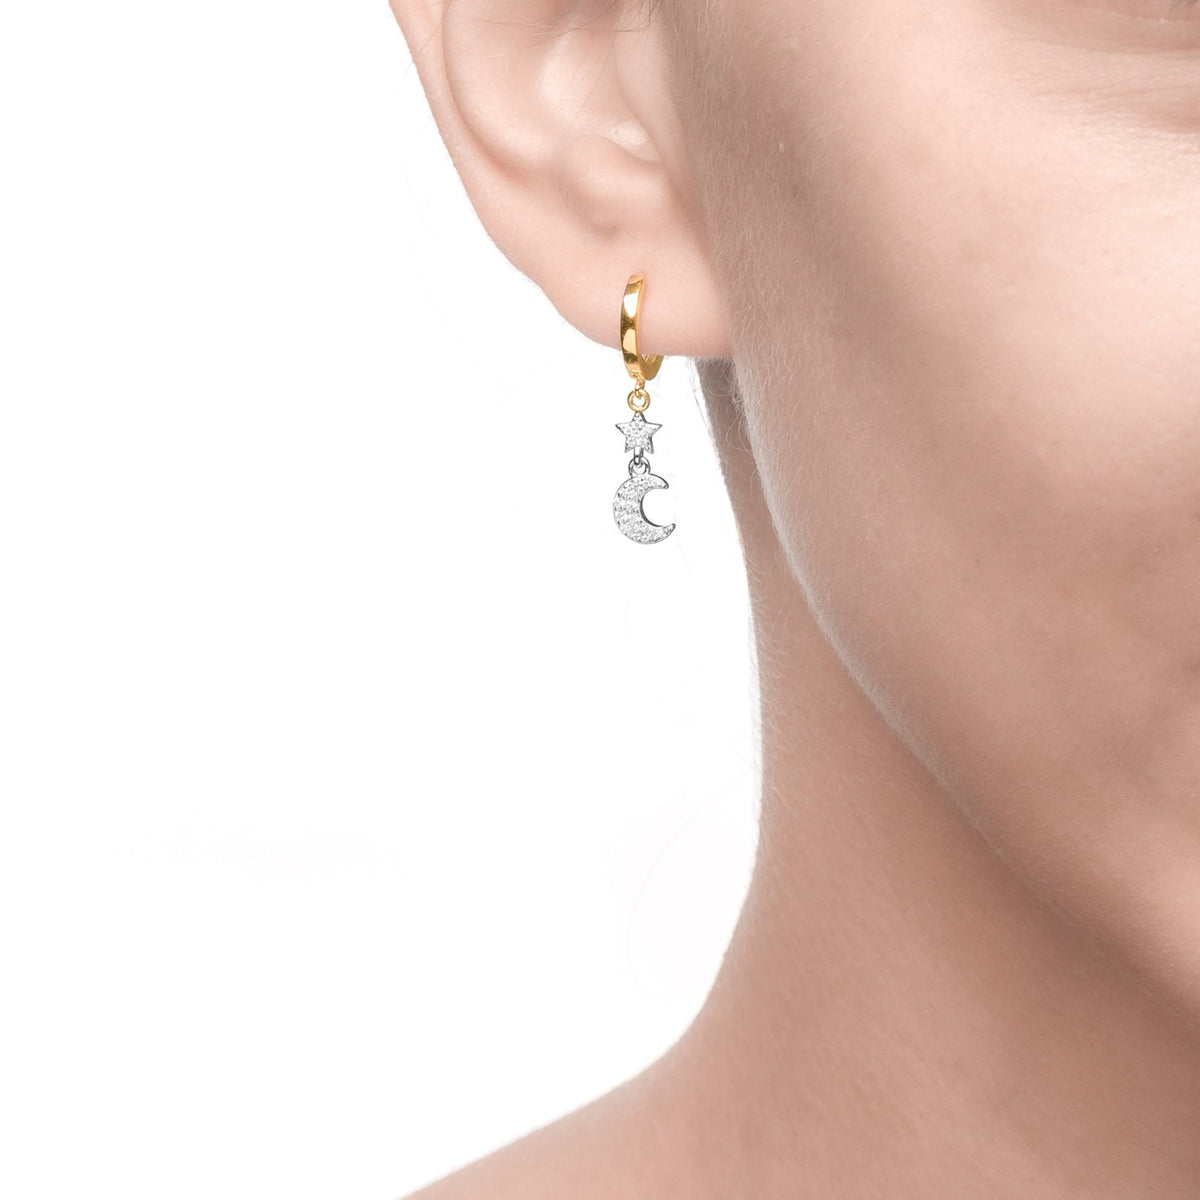 Fortuna | Ravenna Earrings | 925 Silver | White CZ | White Rhodium & 18K Gold Plated